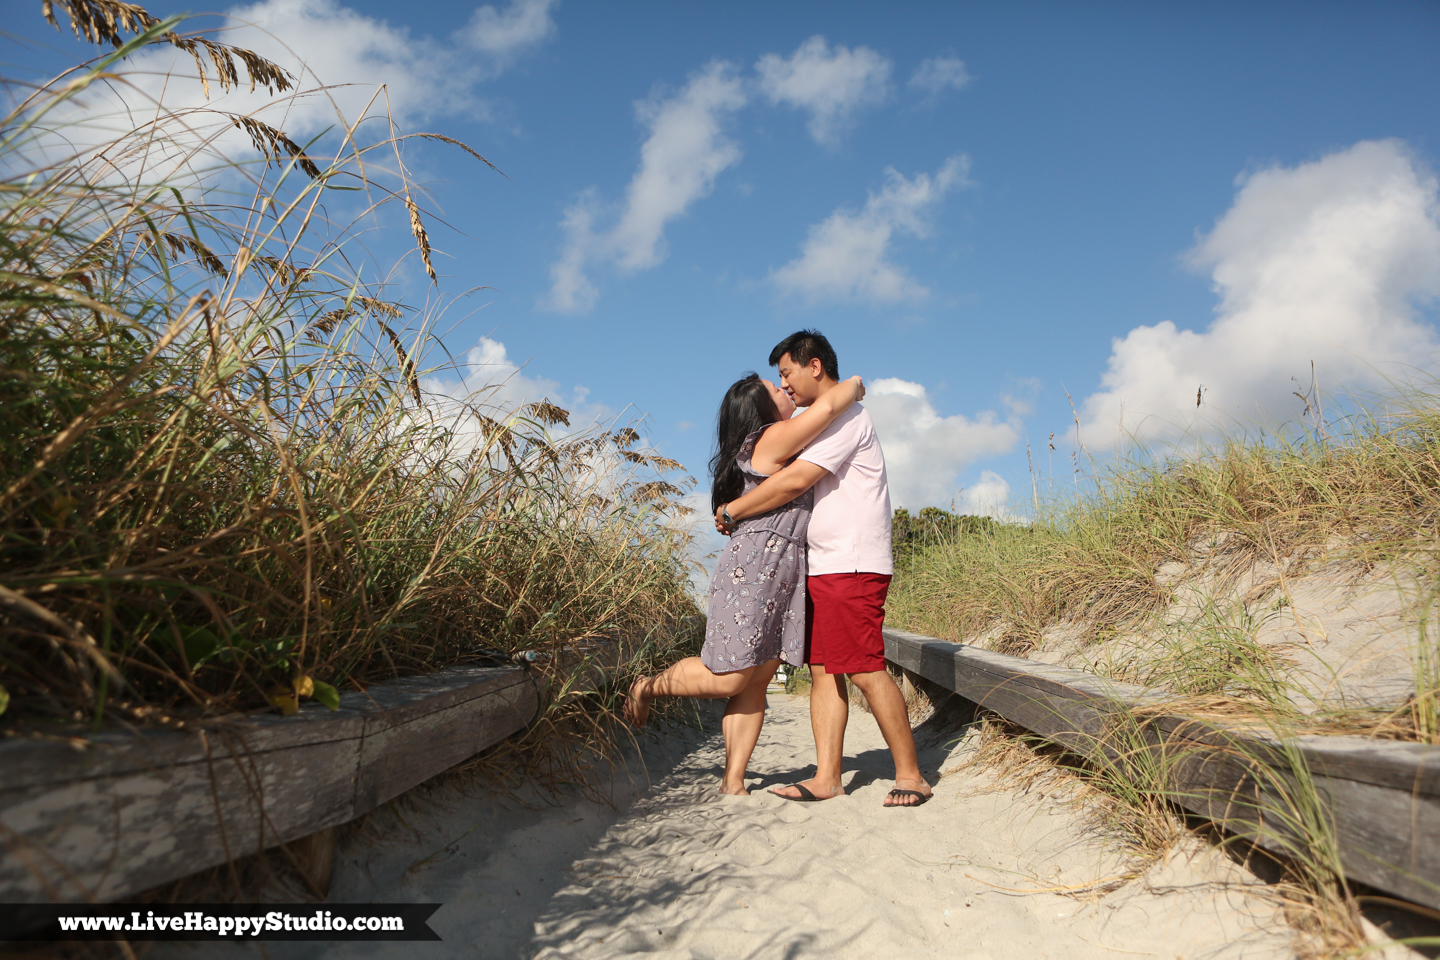 www.livehappystudio.com-engagement-wedding-photographer-orlando-fun-candid-portrait-cocoa-beach-13.jpg